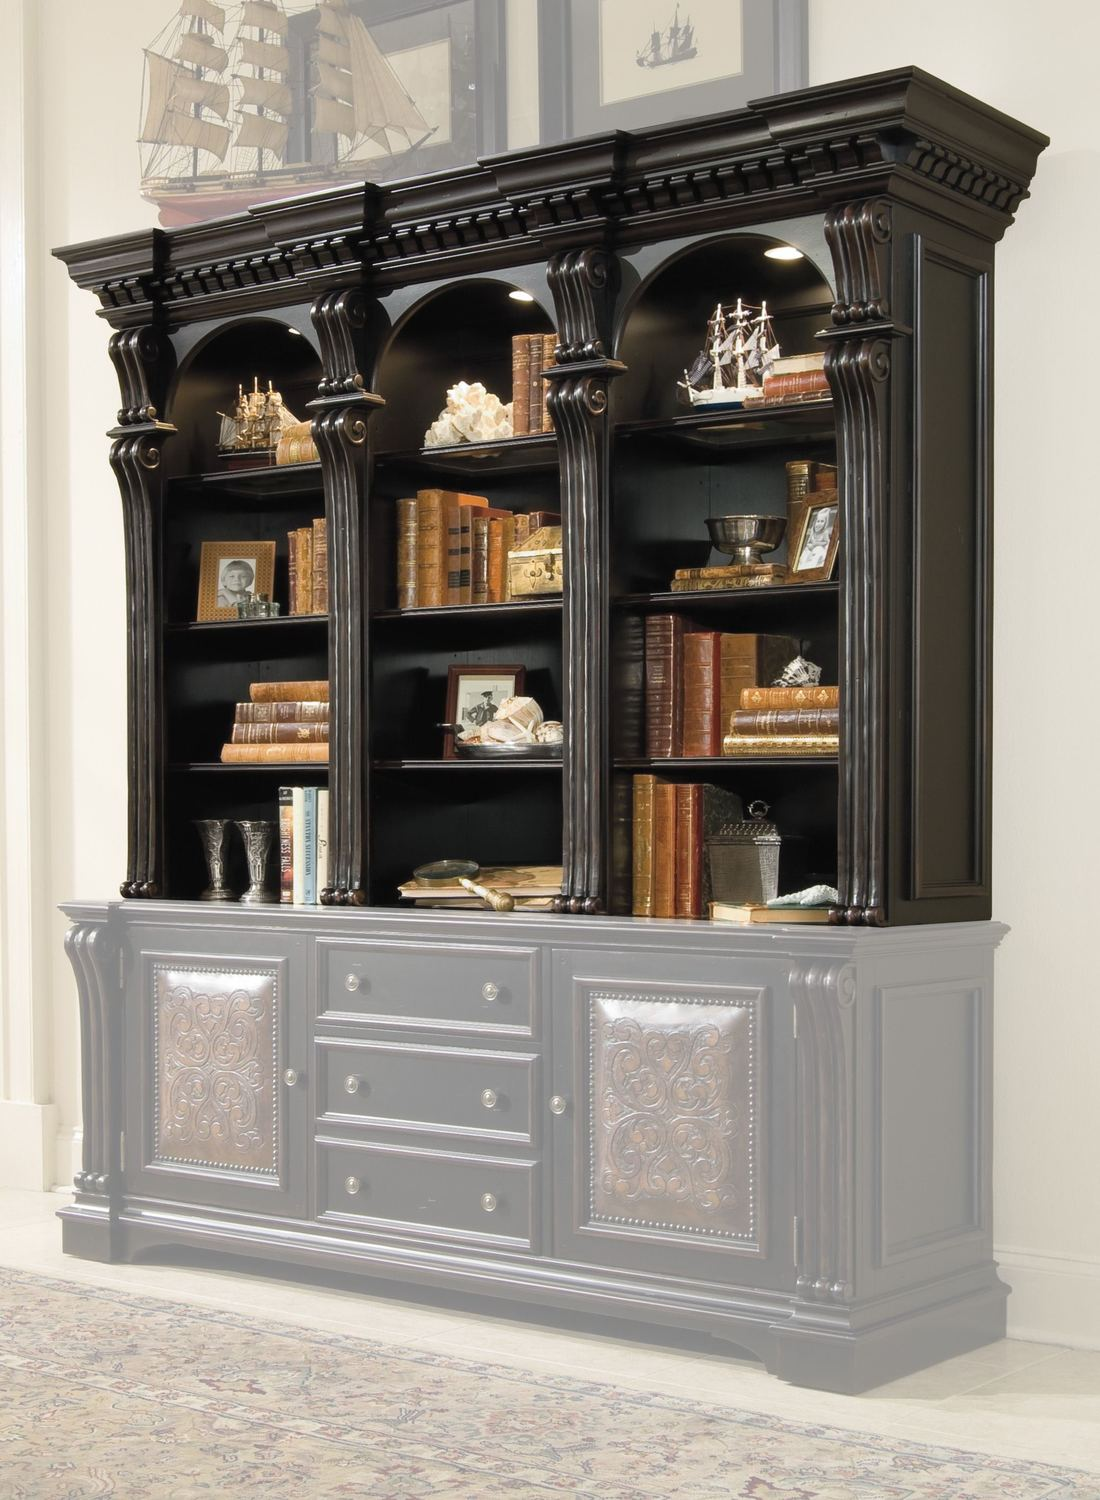 Hooker FurnitureHome Office Telluride Bookcase Hutch